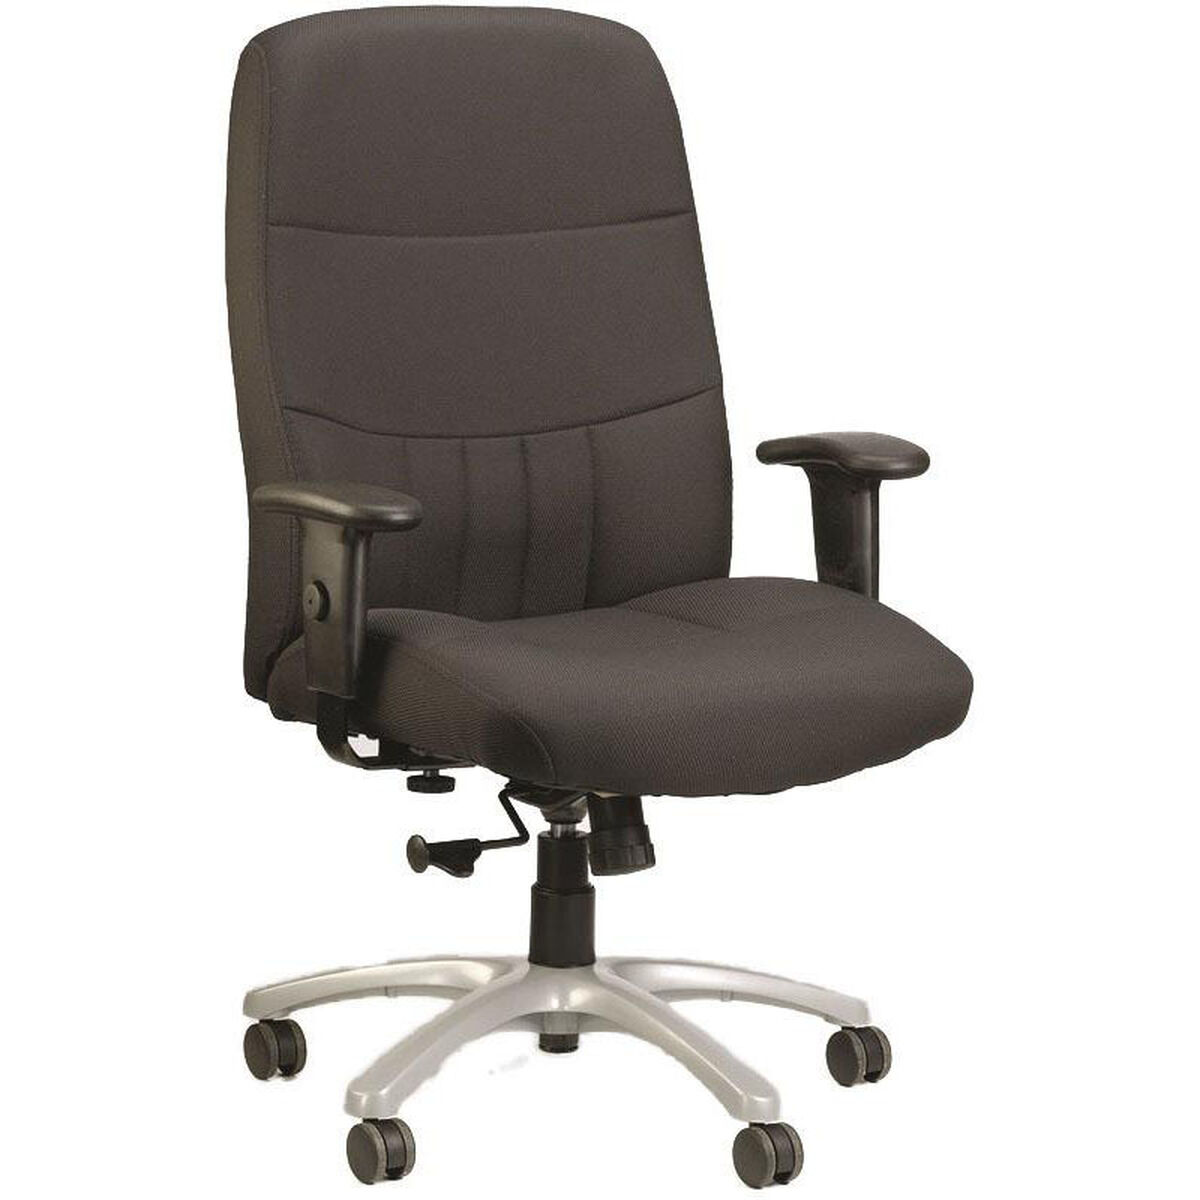 Our Excelsior350 High Back Executive Chair With Maximum 350 Lbs Weight Capacity Black Is On